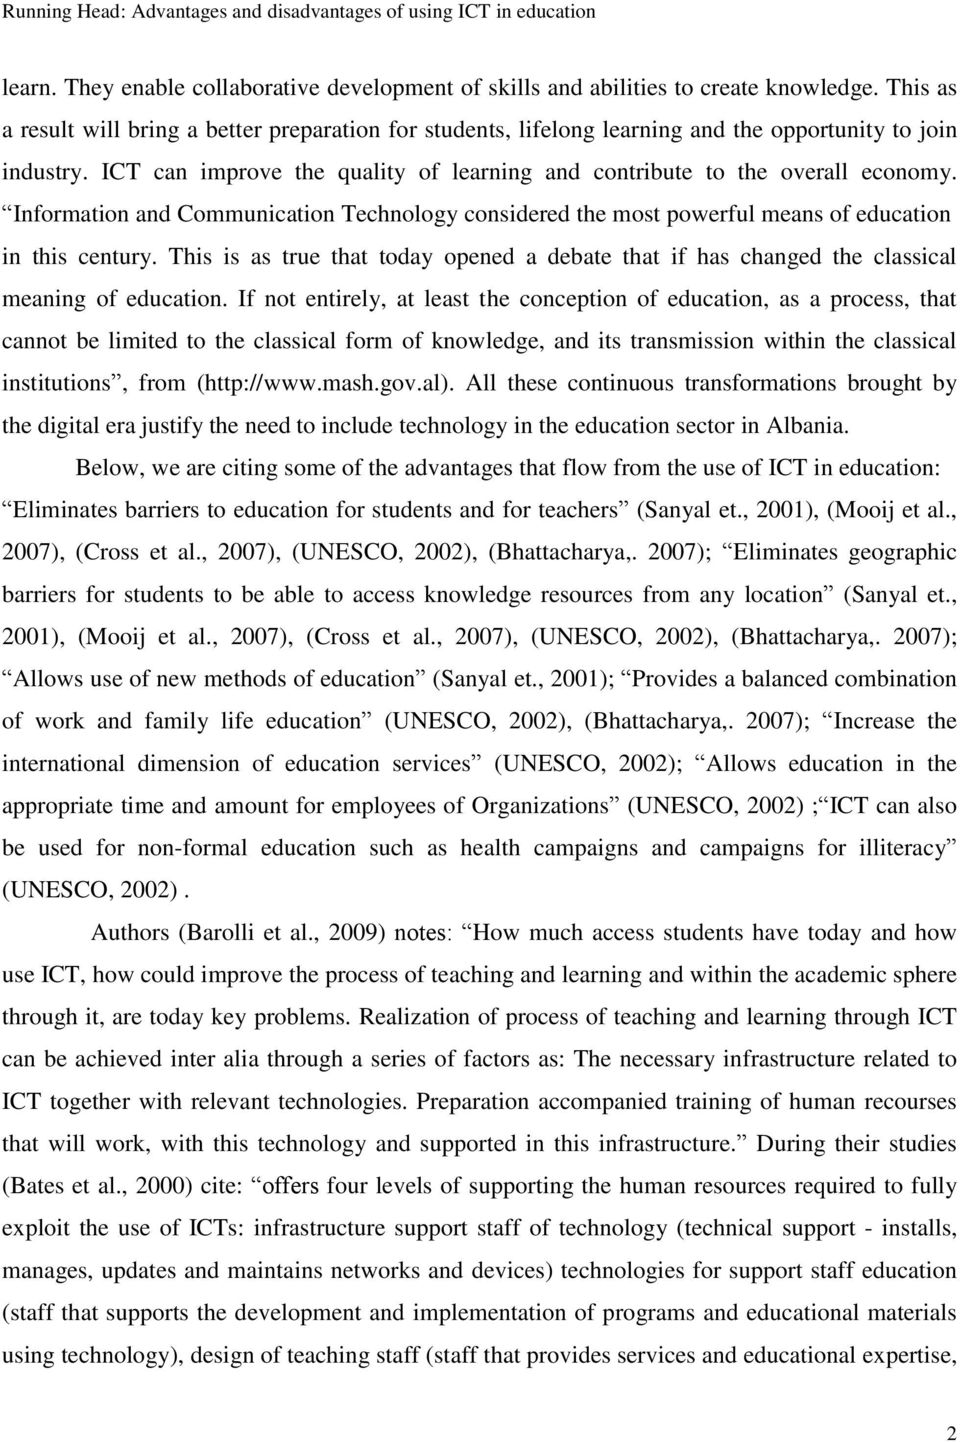 Advantages And Disadvantages Of Using Ict In Education Pdf Free Download